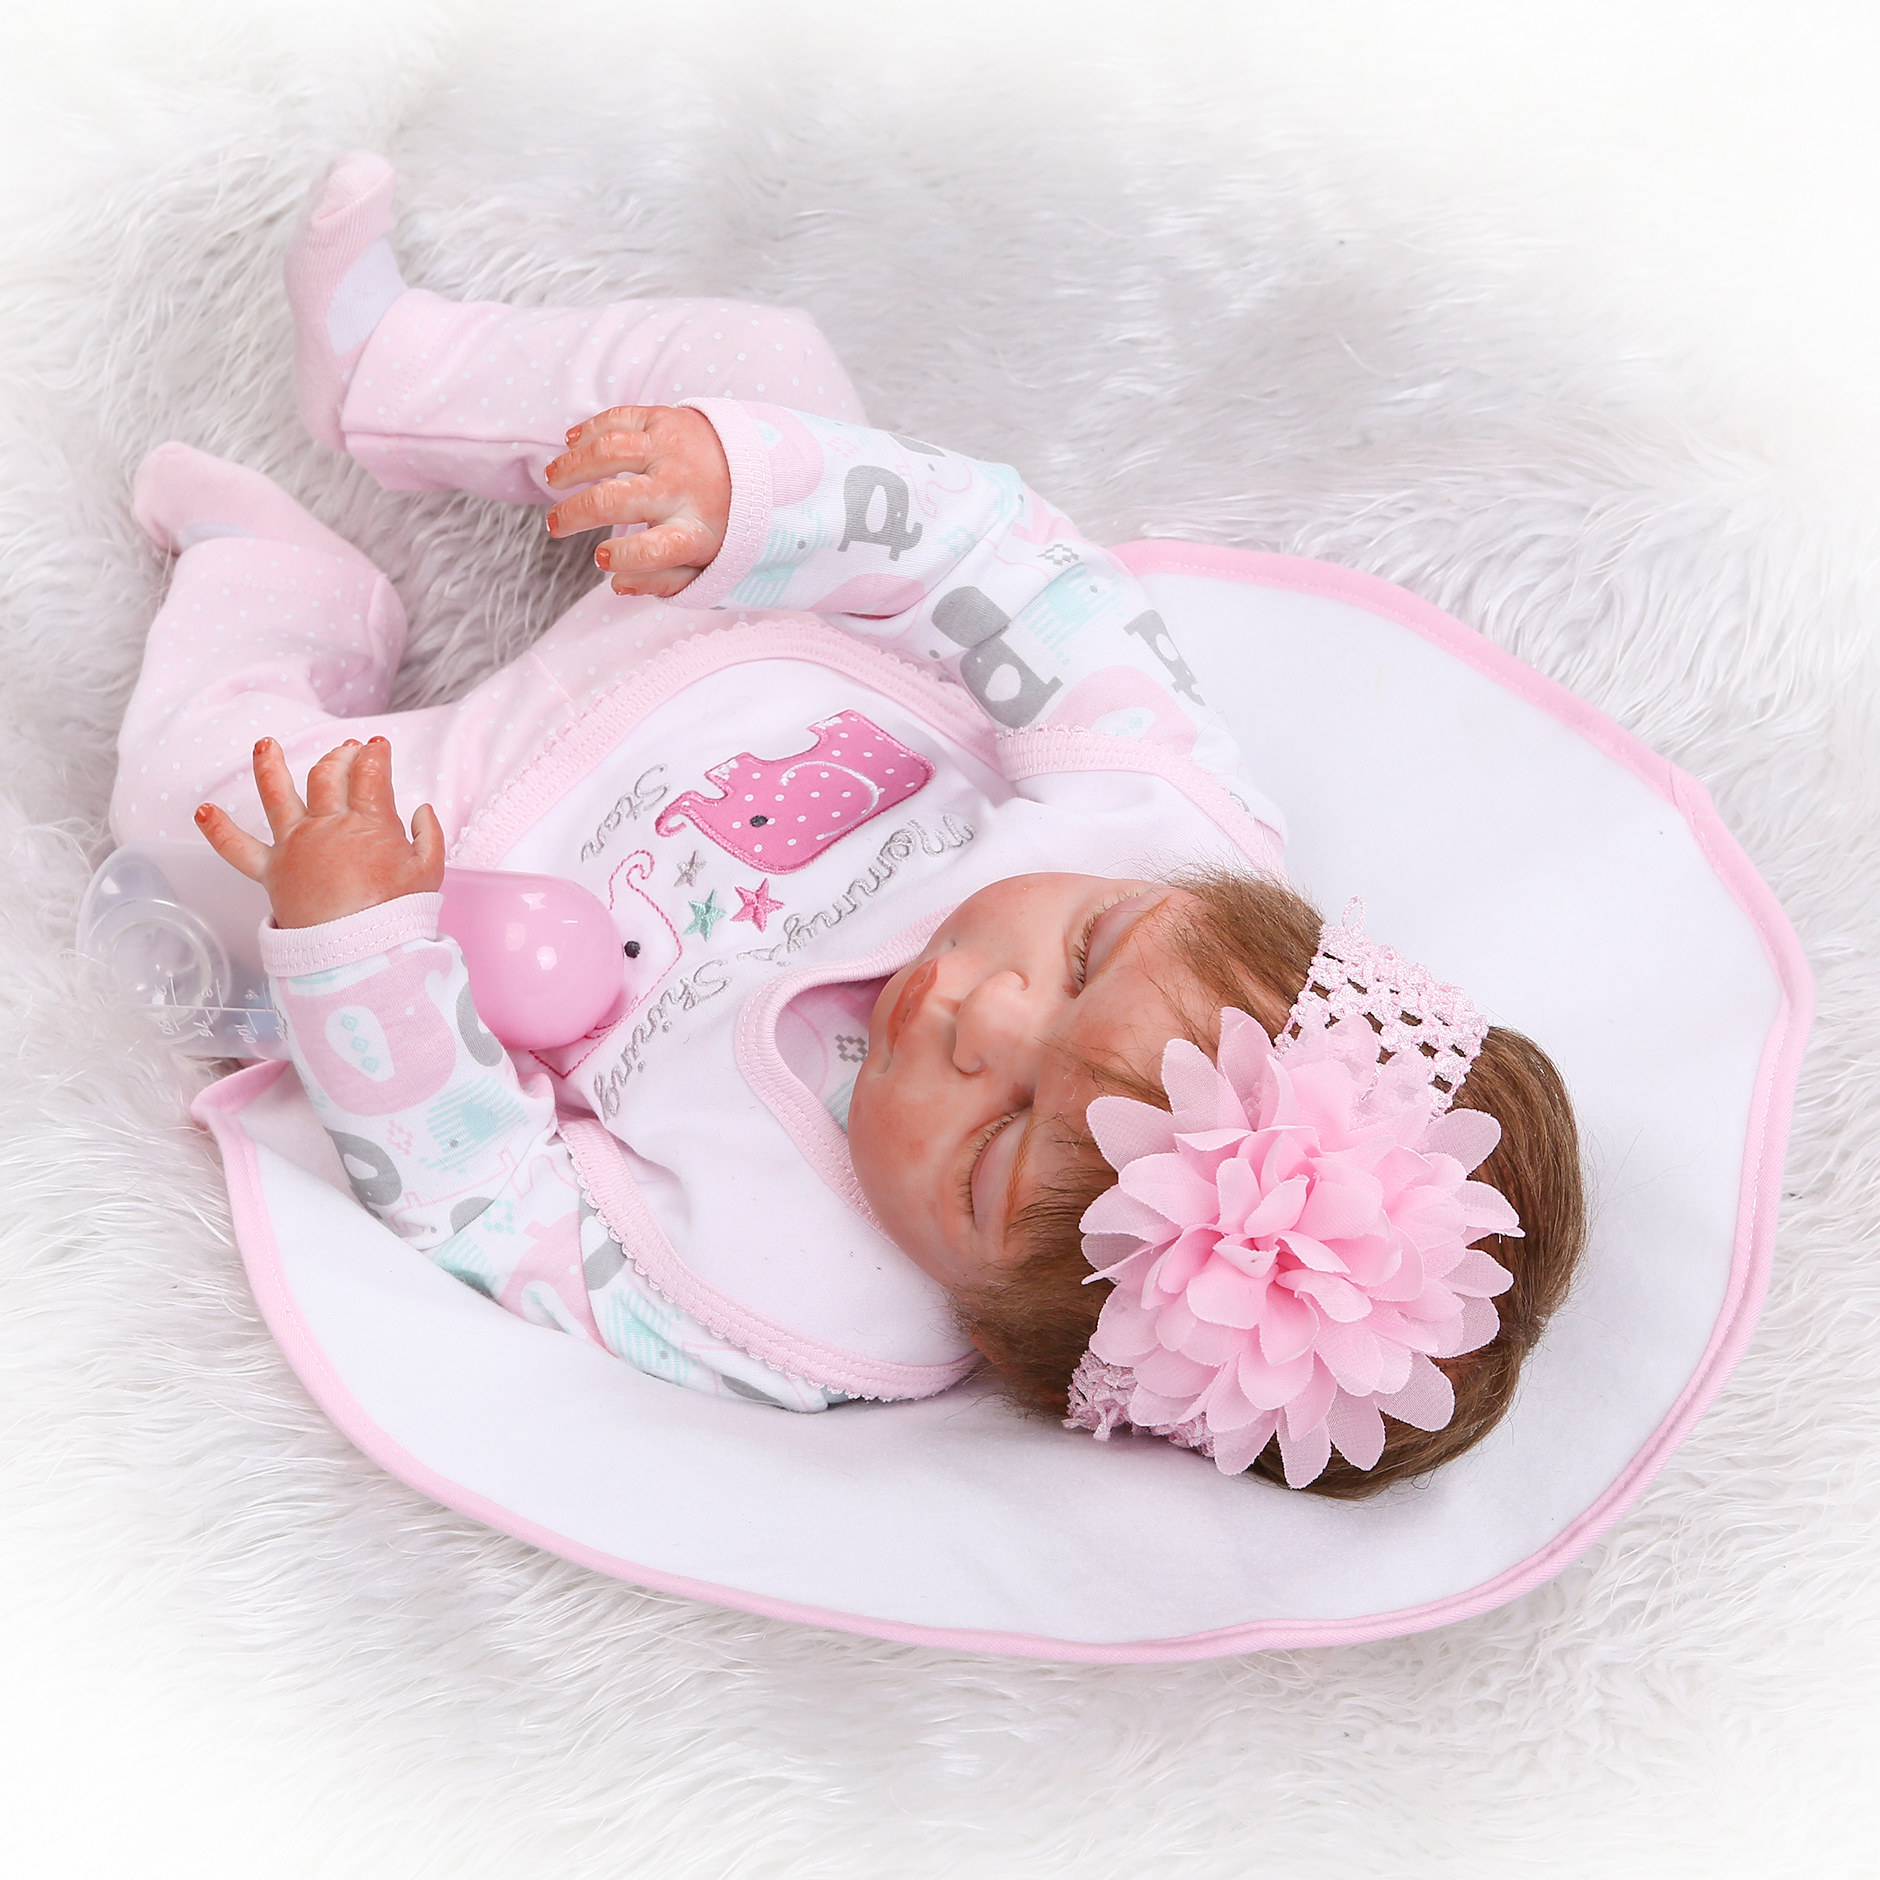 Image 5 - 48CM bebe realistic reborn premie baby doll hand detailed painting pinky look full body silicone Anatomically Correct-in Dolls from Toys & Hobbies